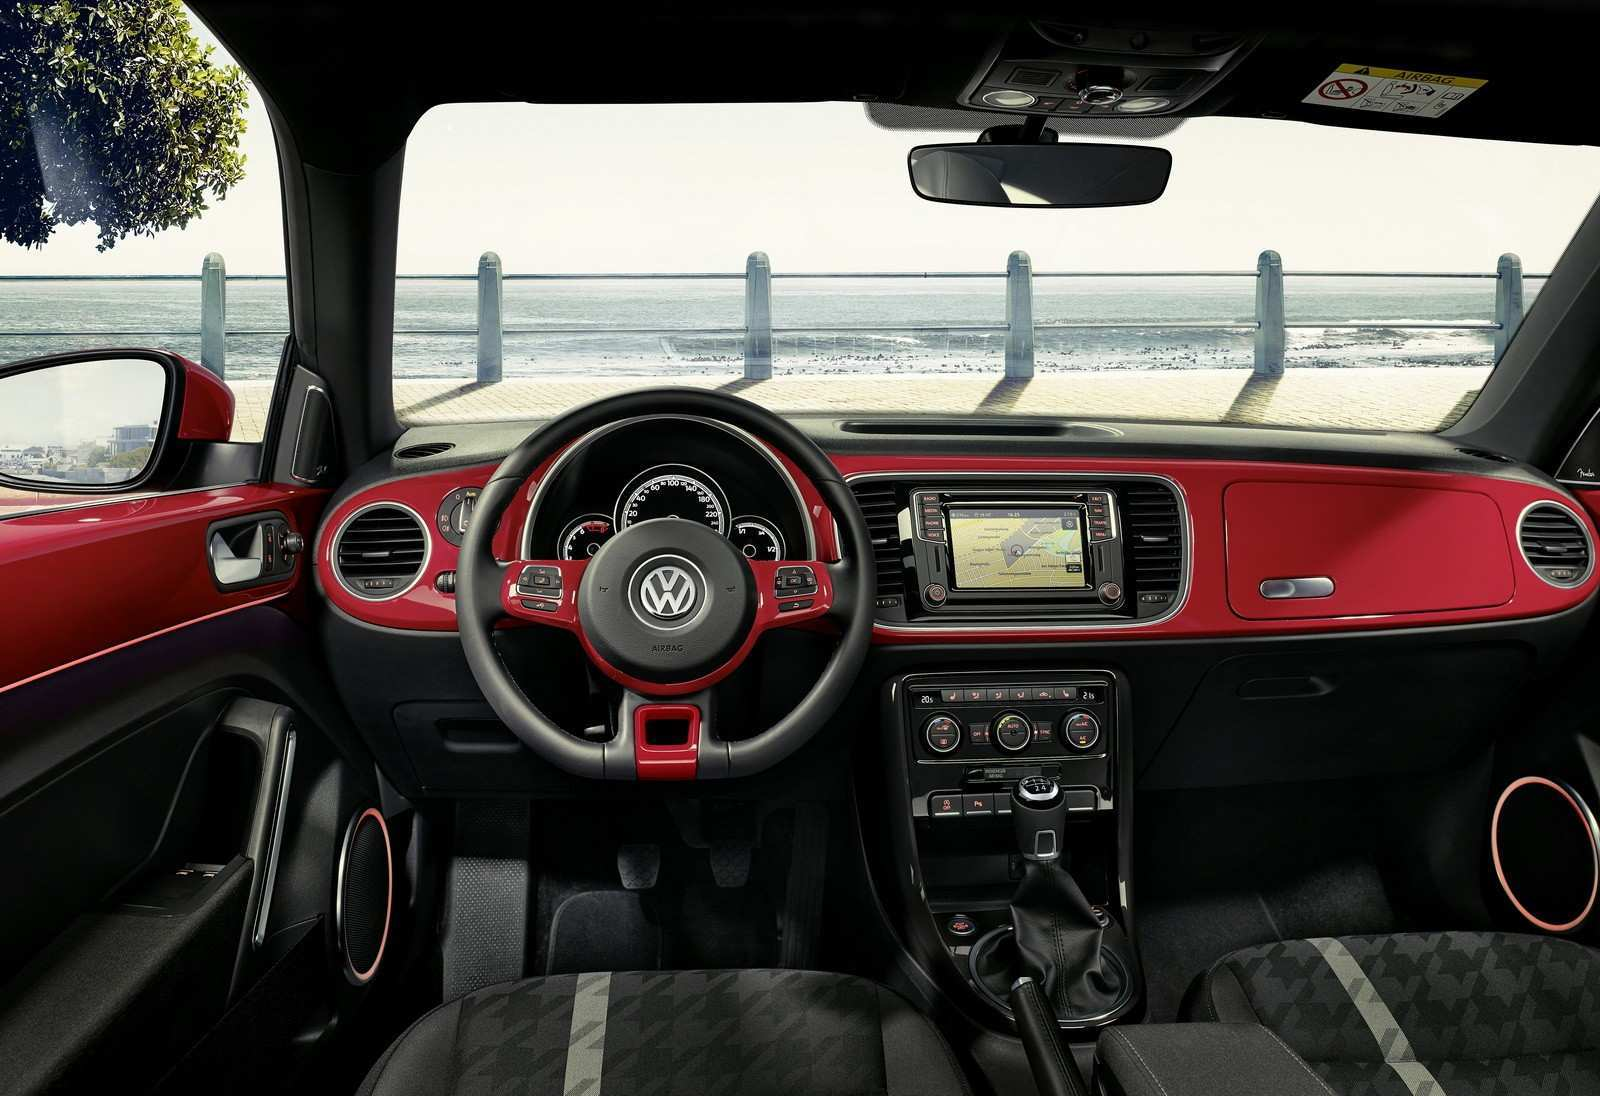 35 New 2020 Volkswagen Beetle Price And Review